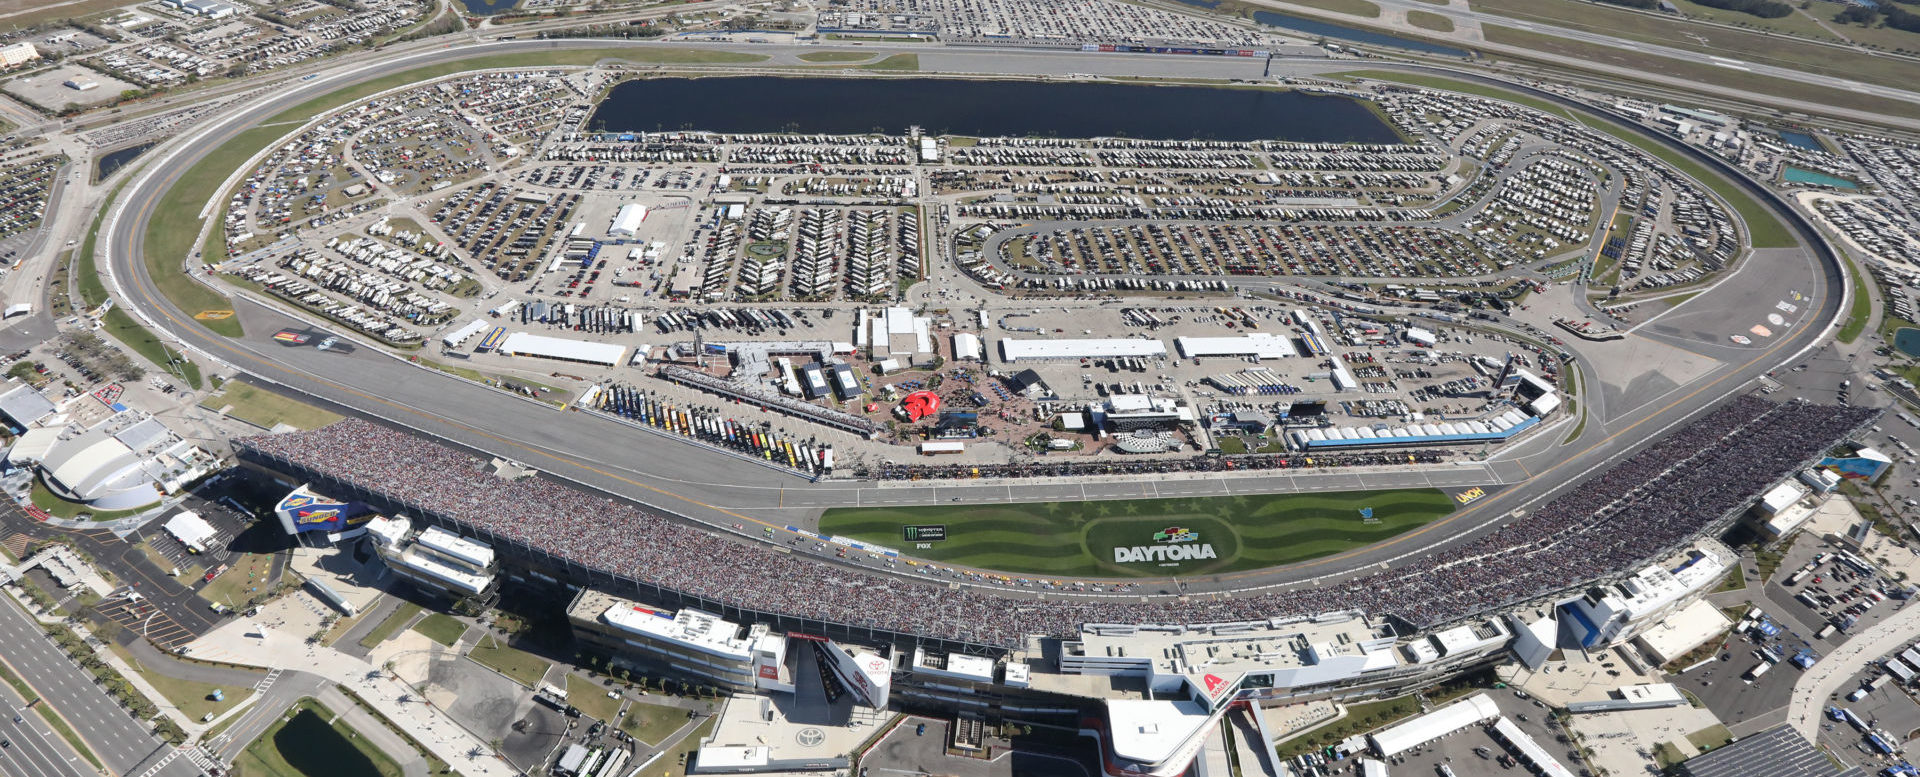 Daytona International Speedway. Photo courtesy of Daytona International Speedway.